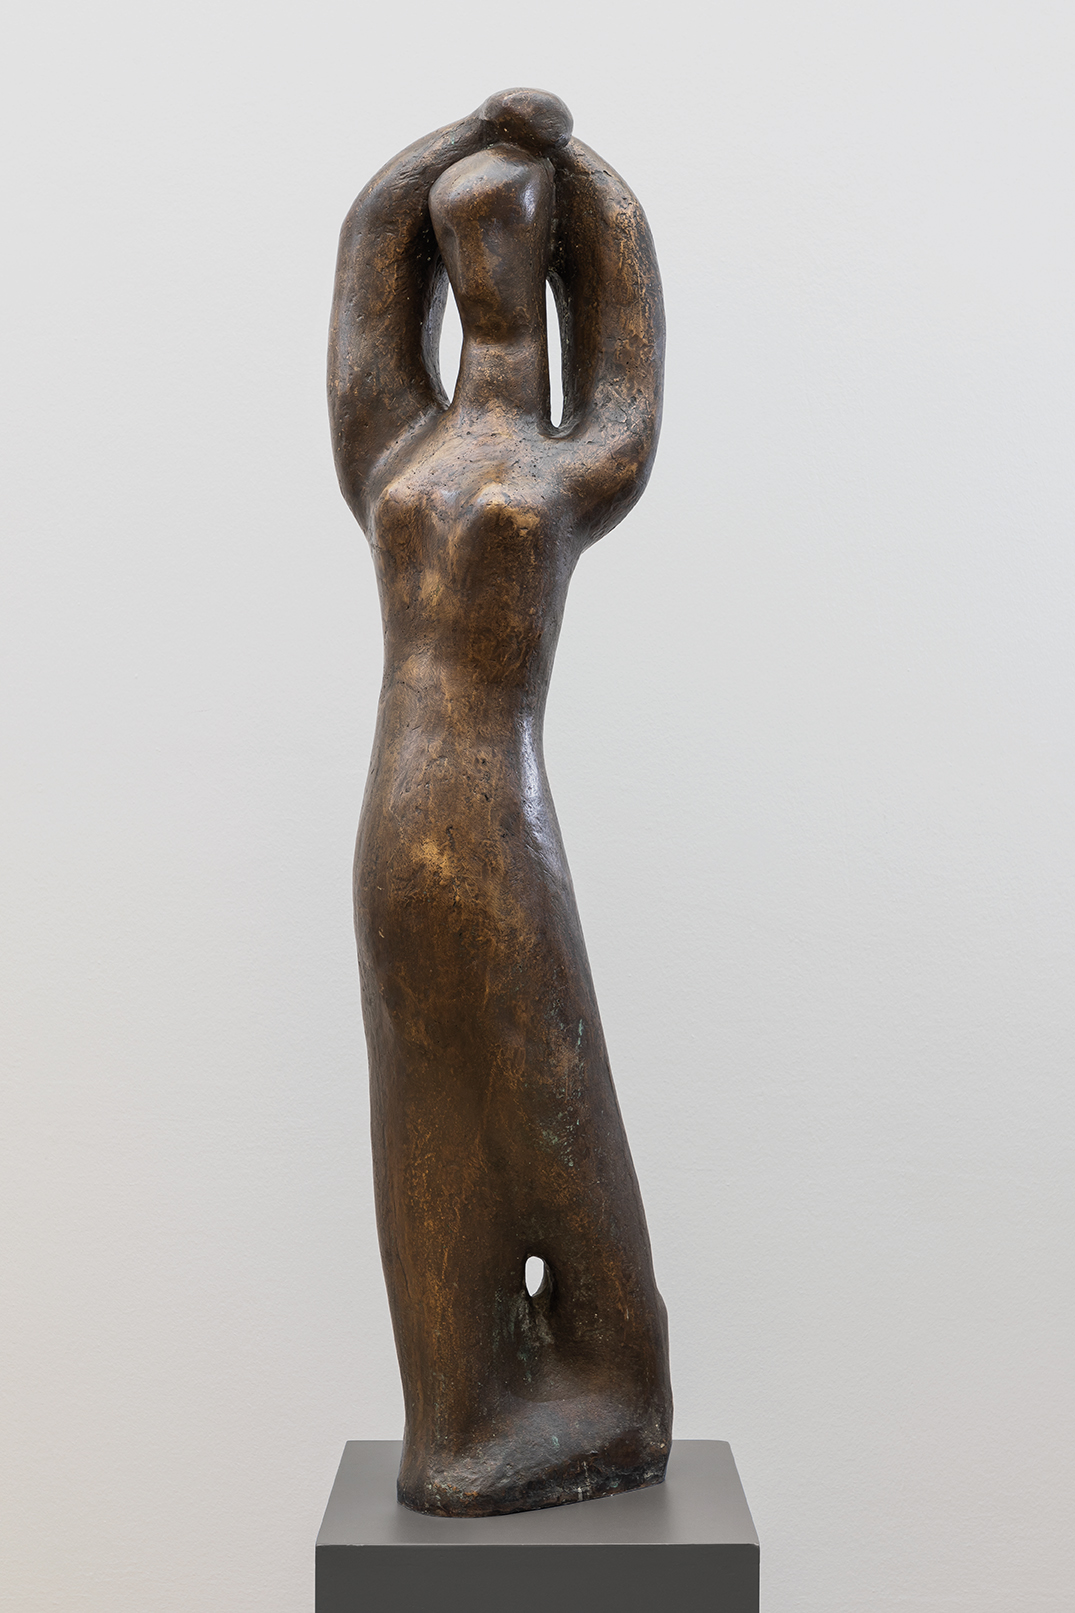 Louise Stomps | Goddess | 1950s | bronze | signed | 133 cm